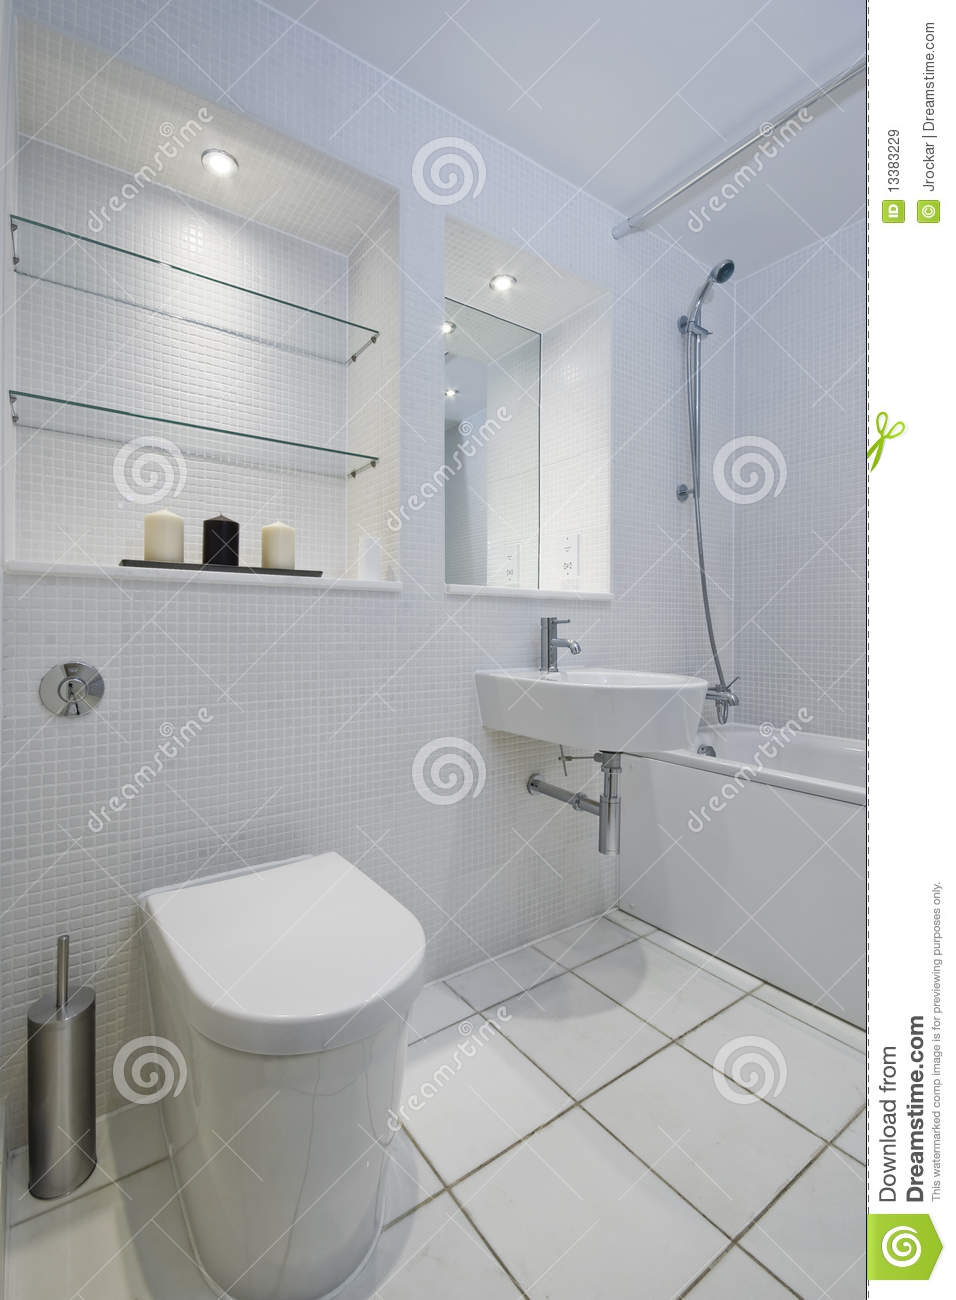 White Mosaic Tiled Bathroom Stock Image - Image of home, interior ...